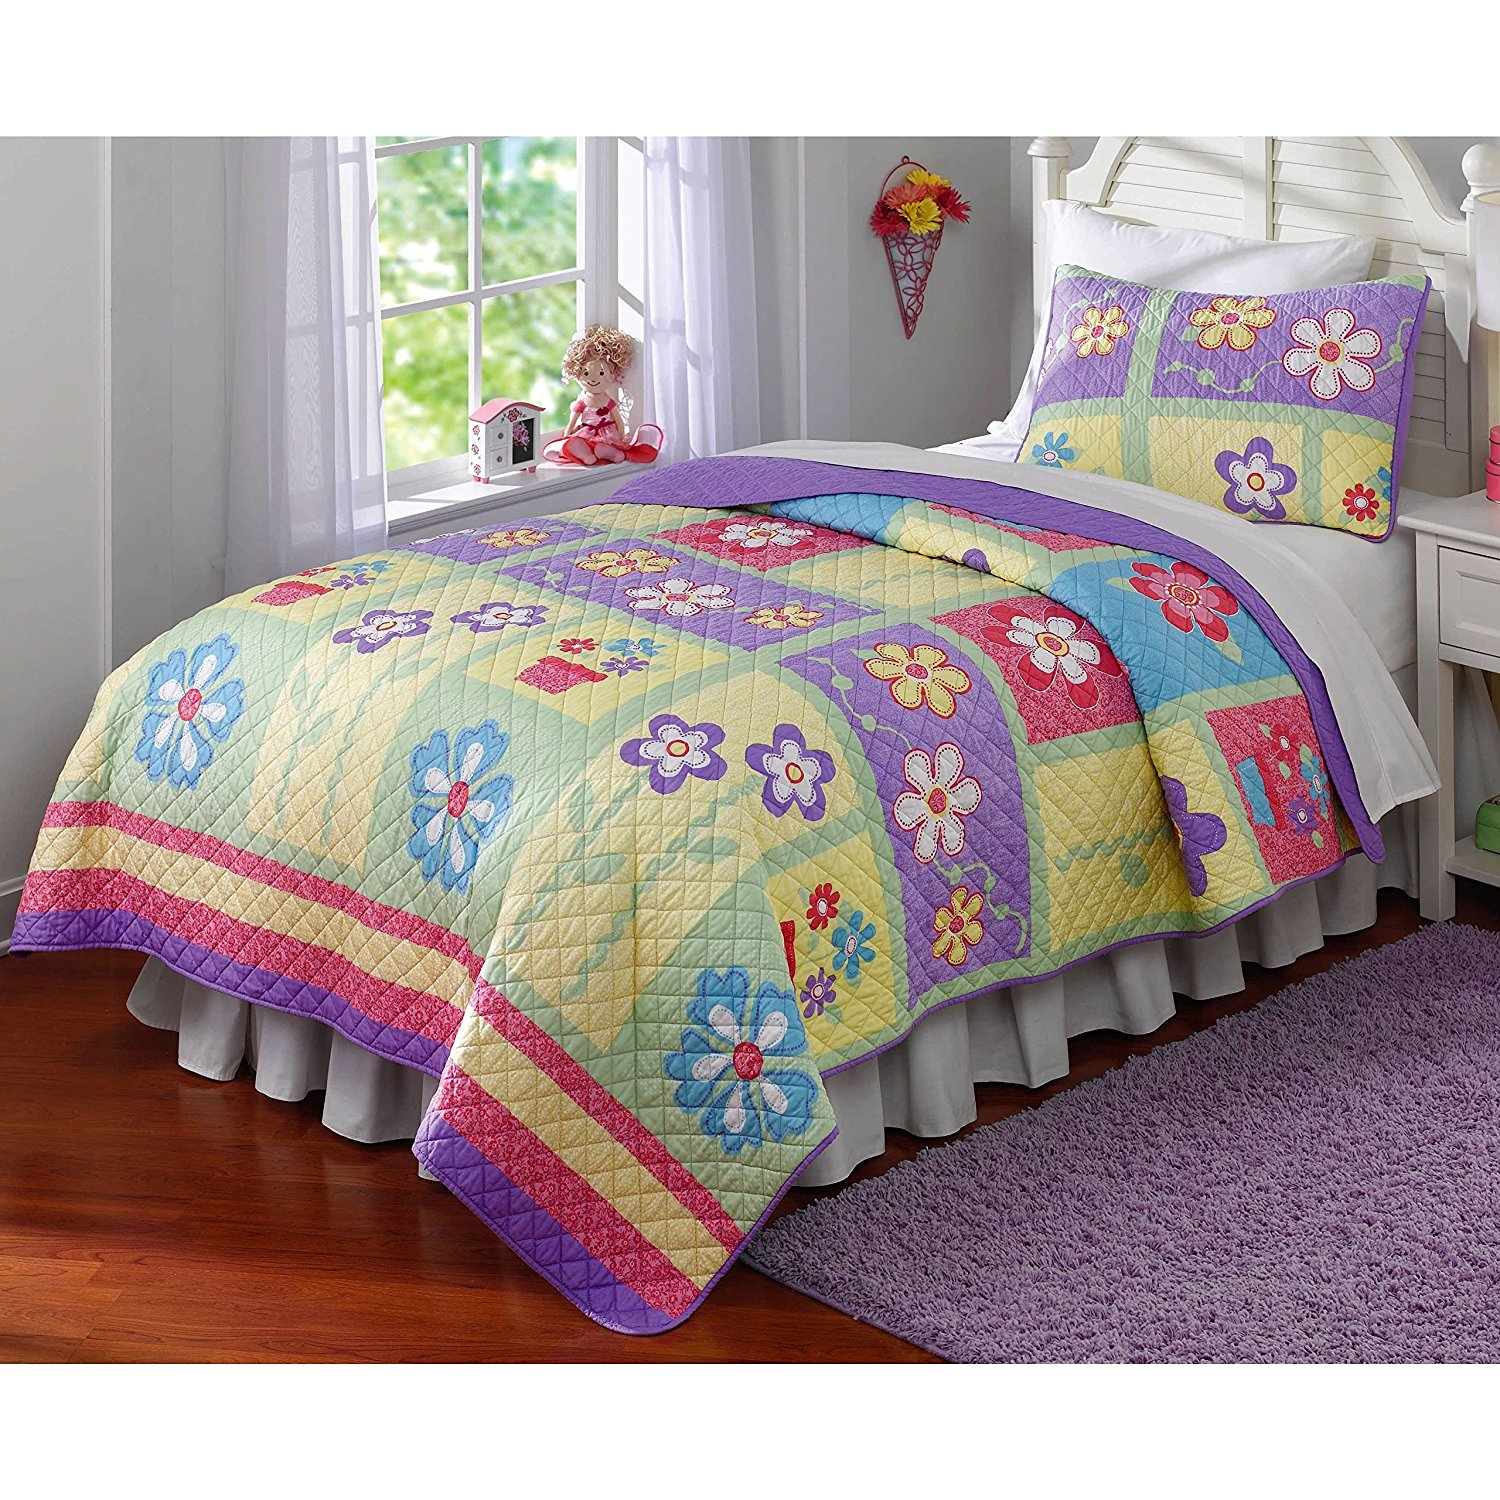 3 Piece Kids Girls Pink Red Purple Yellow Green Full Queen Quilt Set, Floral Themed Bedding Flower Bright Daisies Patchwork Cute Adorable Stylish Fun Sweet Pretty Elegant Garden, Cotton, Microfiber